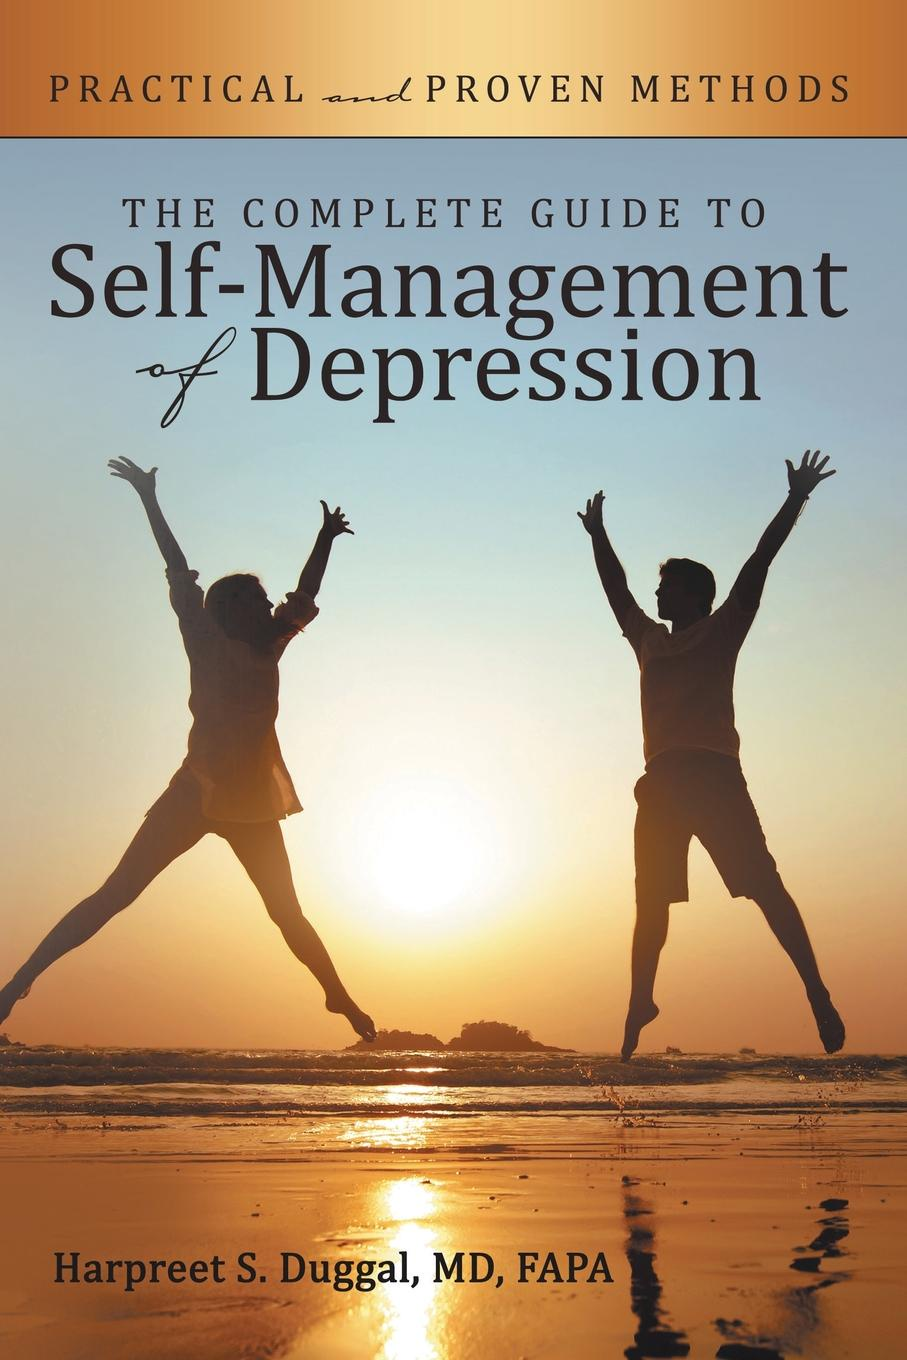 Harpreet S. Duggal MD FAPA The Complete Guide to Self-Management of Depression. Practical and Proven Methods kanchan ganda dentist s guide to medical conditions medications and complications